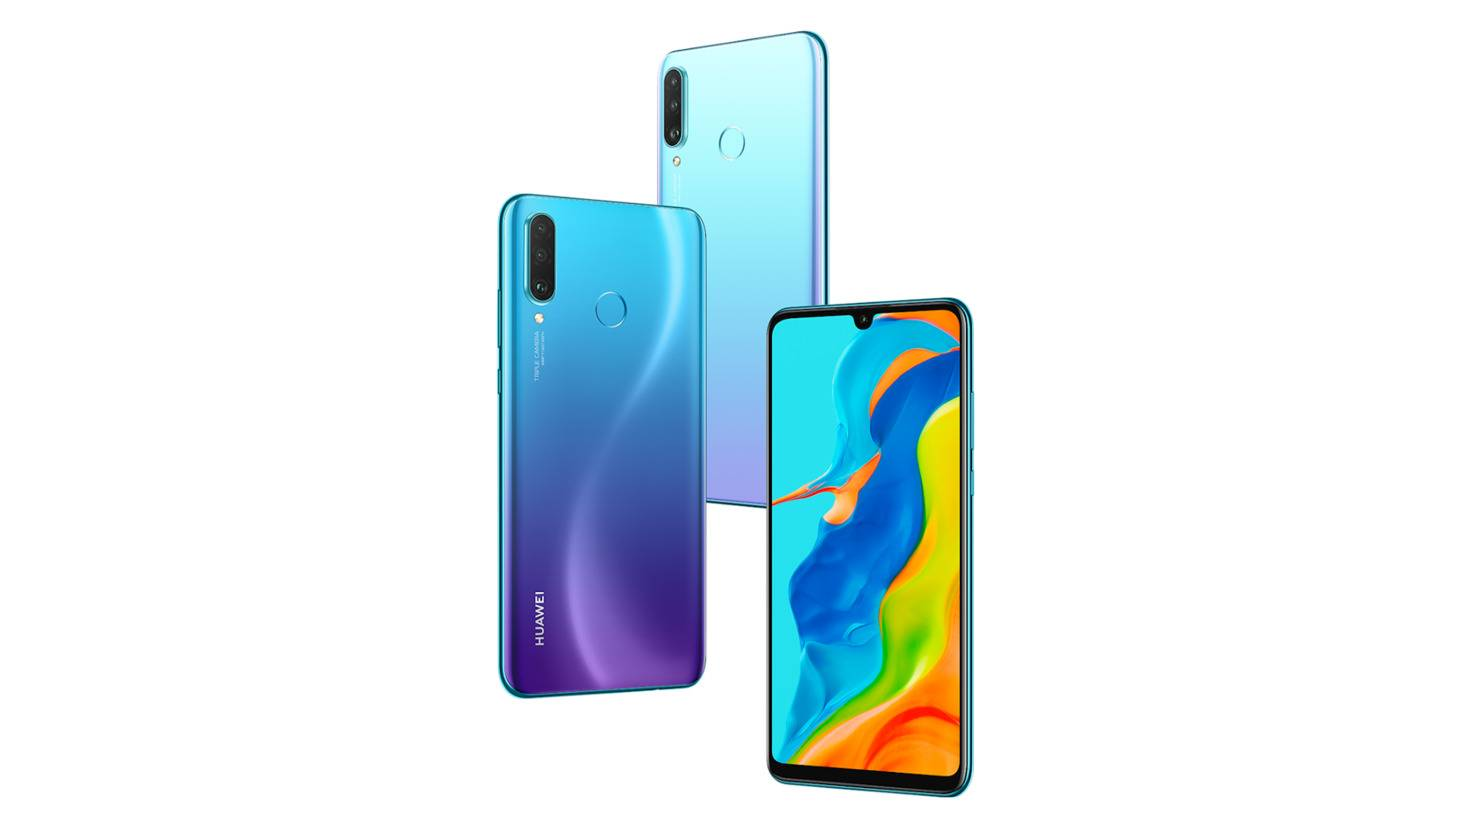 huawei-p30-lite-new-edition-peacock-blue-breathing-crystal